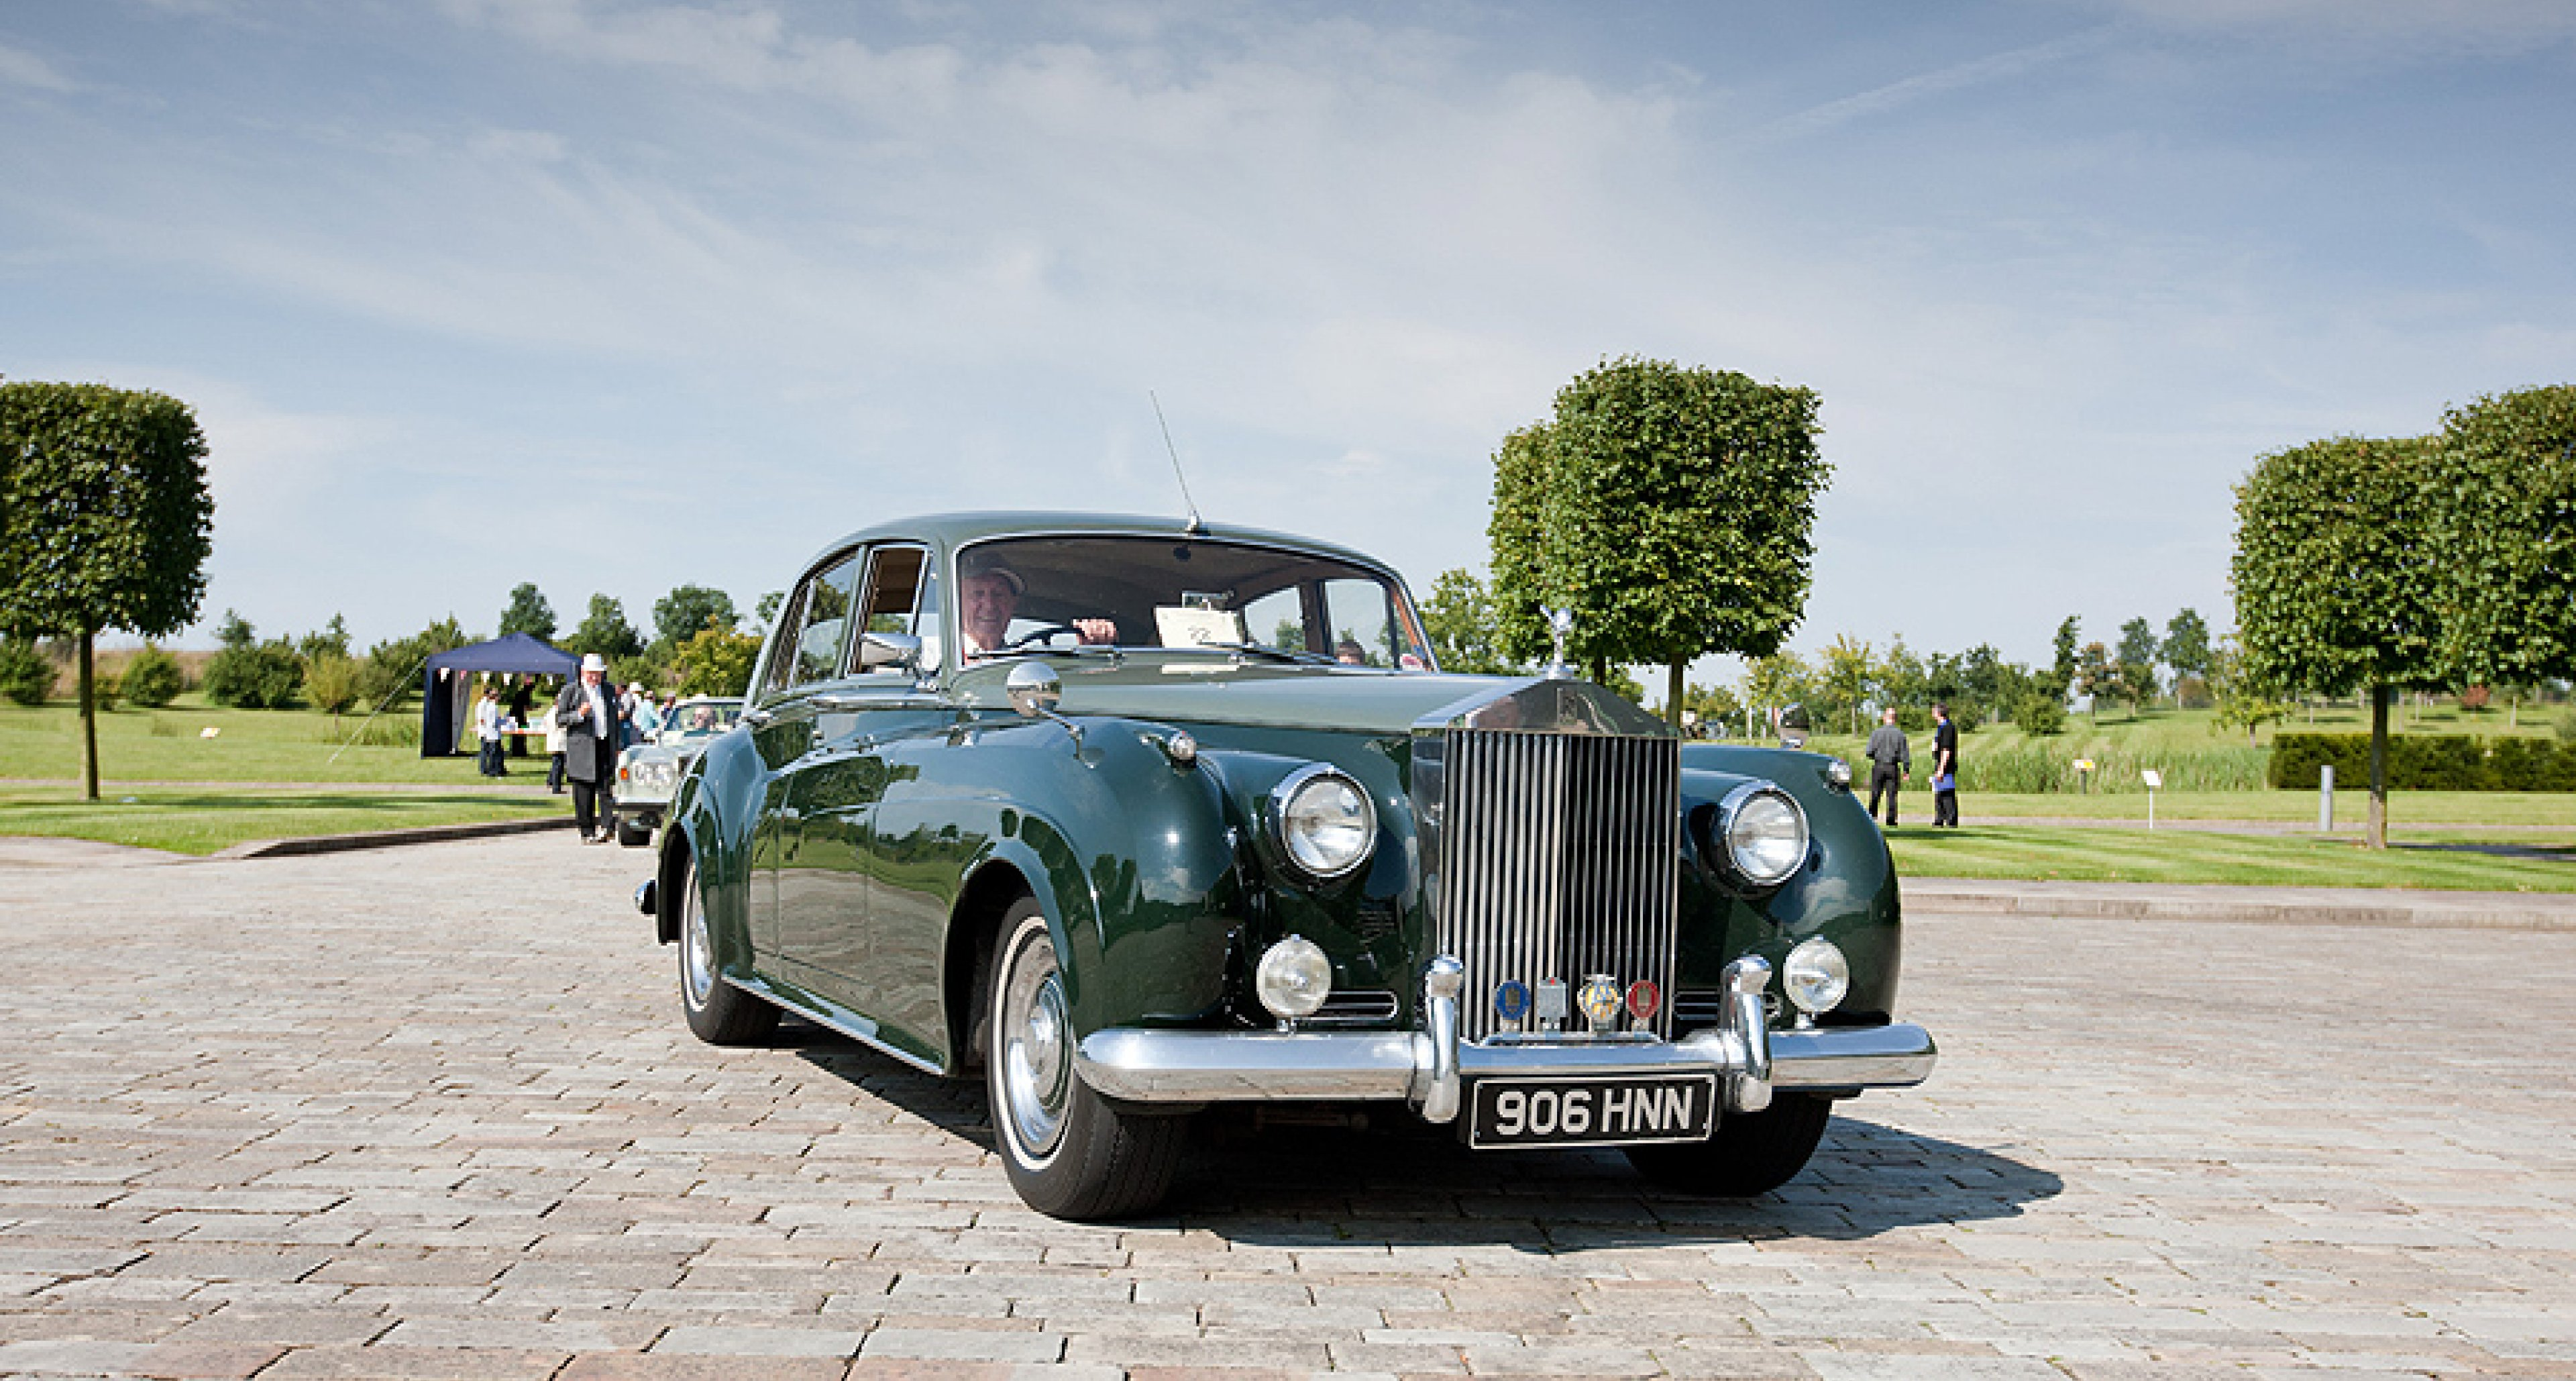 100 Motor Cars For Years Rolls Royce Celebrates At Goodwood